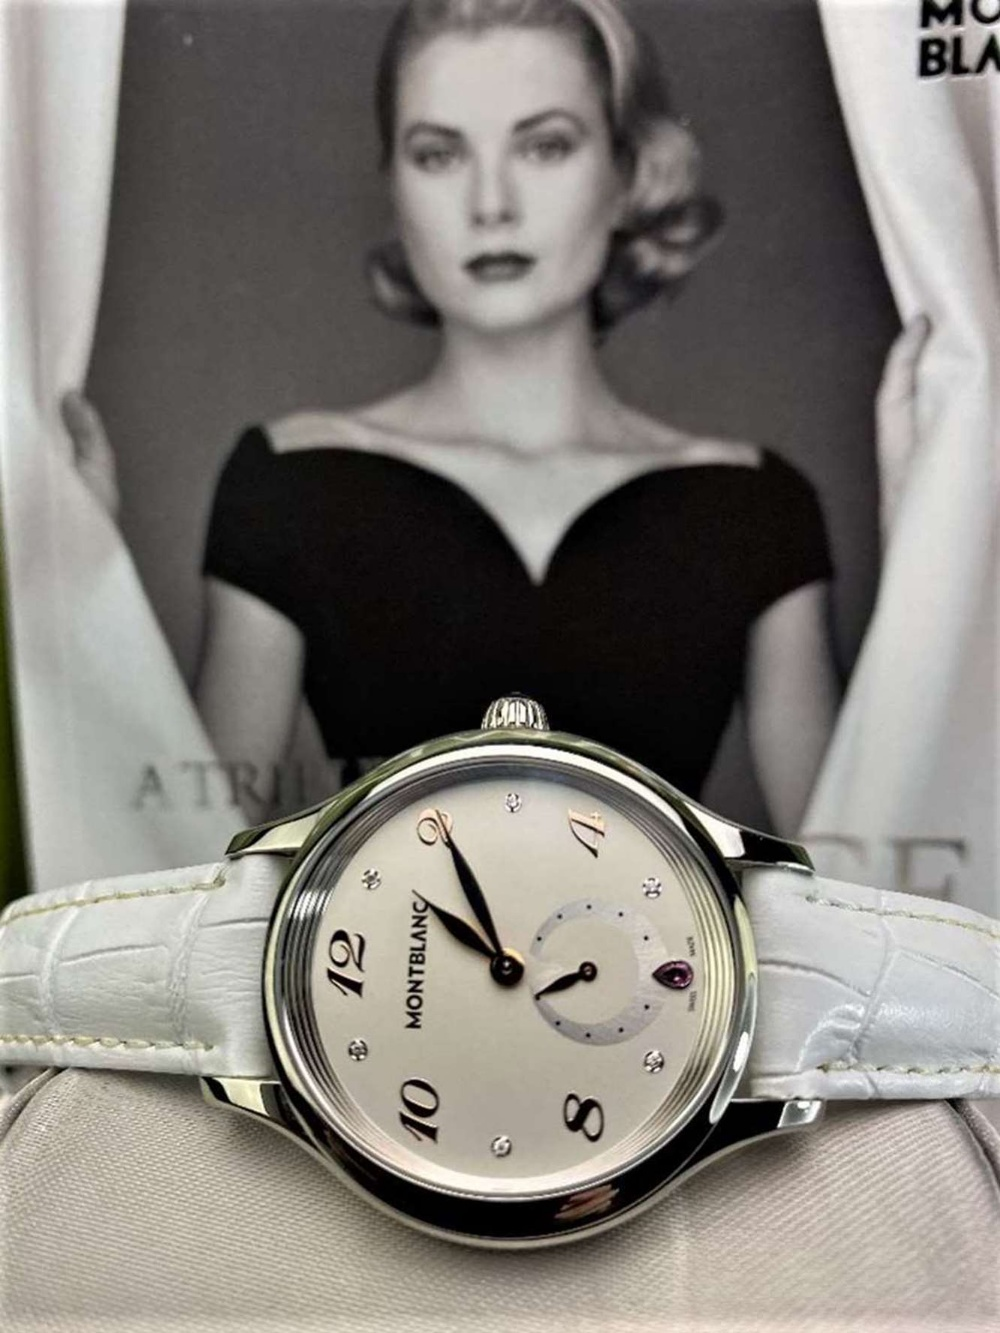 Montblanc Special Edition Princess Grace Of Monaco Diamond Watch - Image 9 of 11